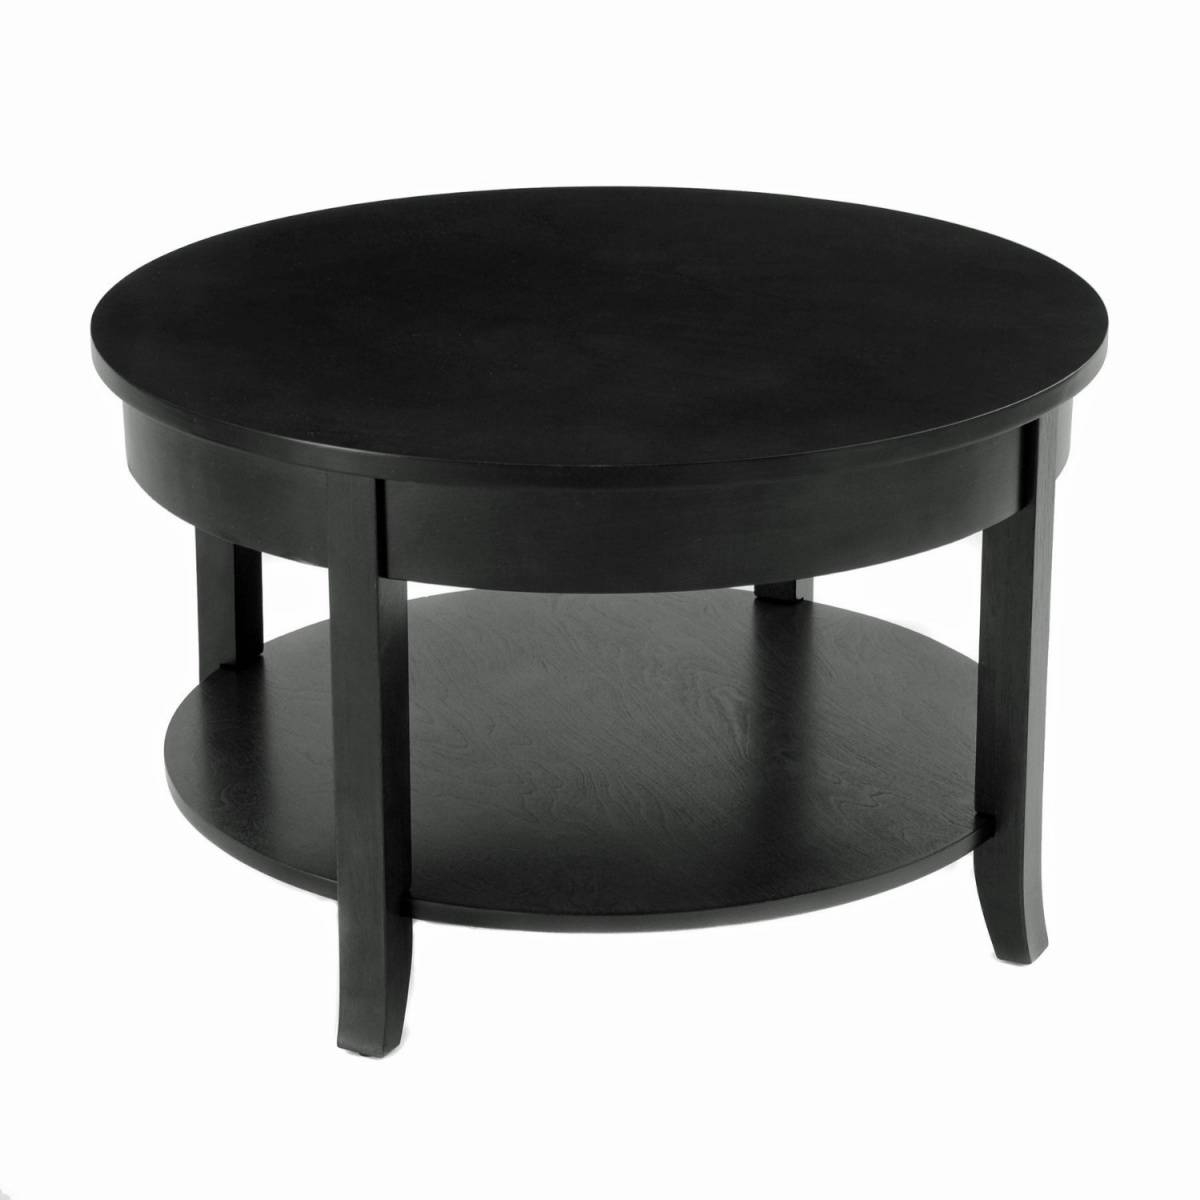 Low Coffee Table With Storage 30 Collection Of Small Coffee Tables With Storage